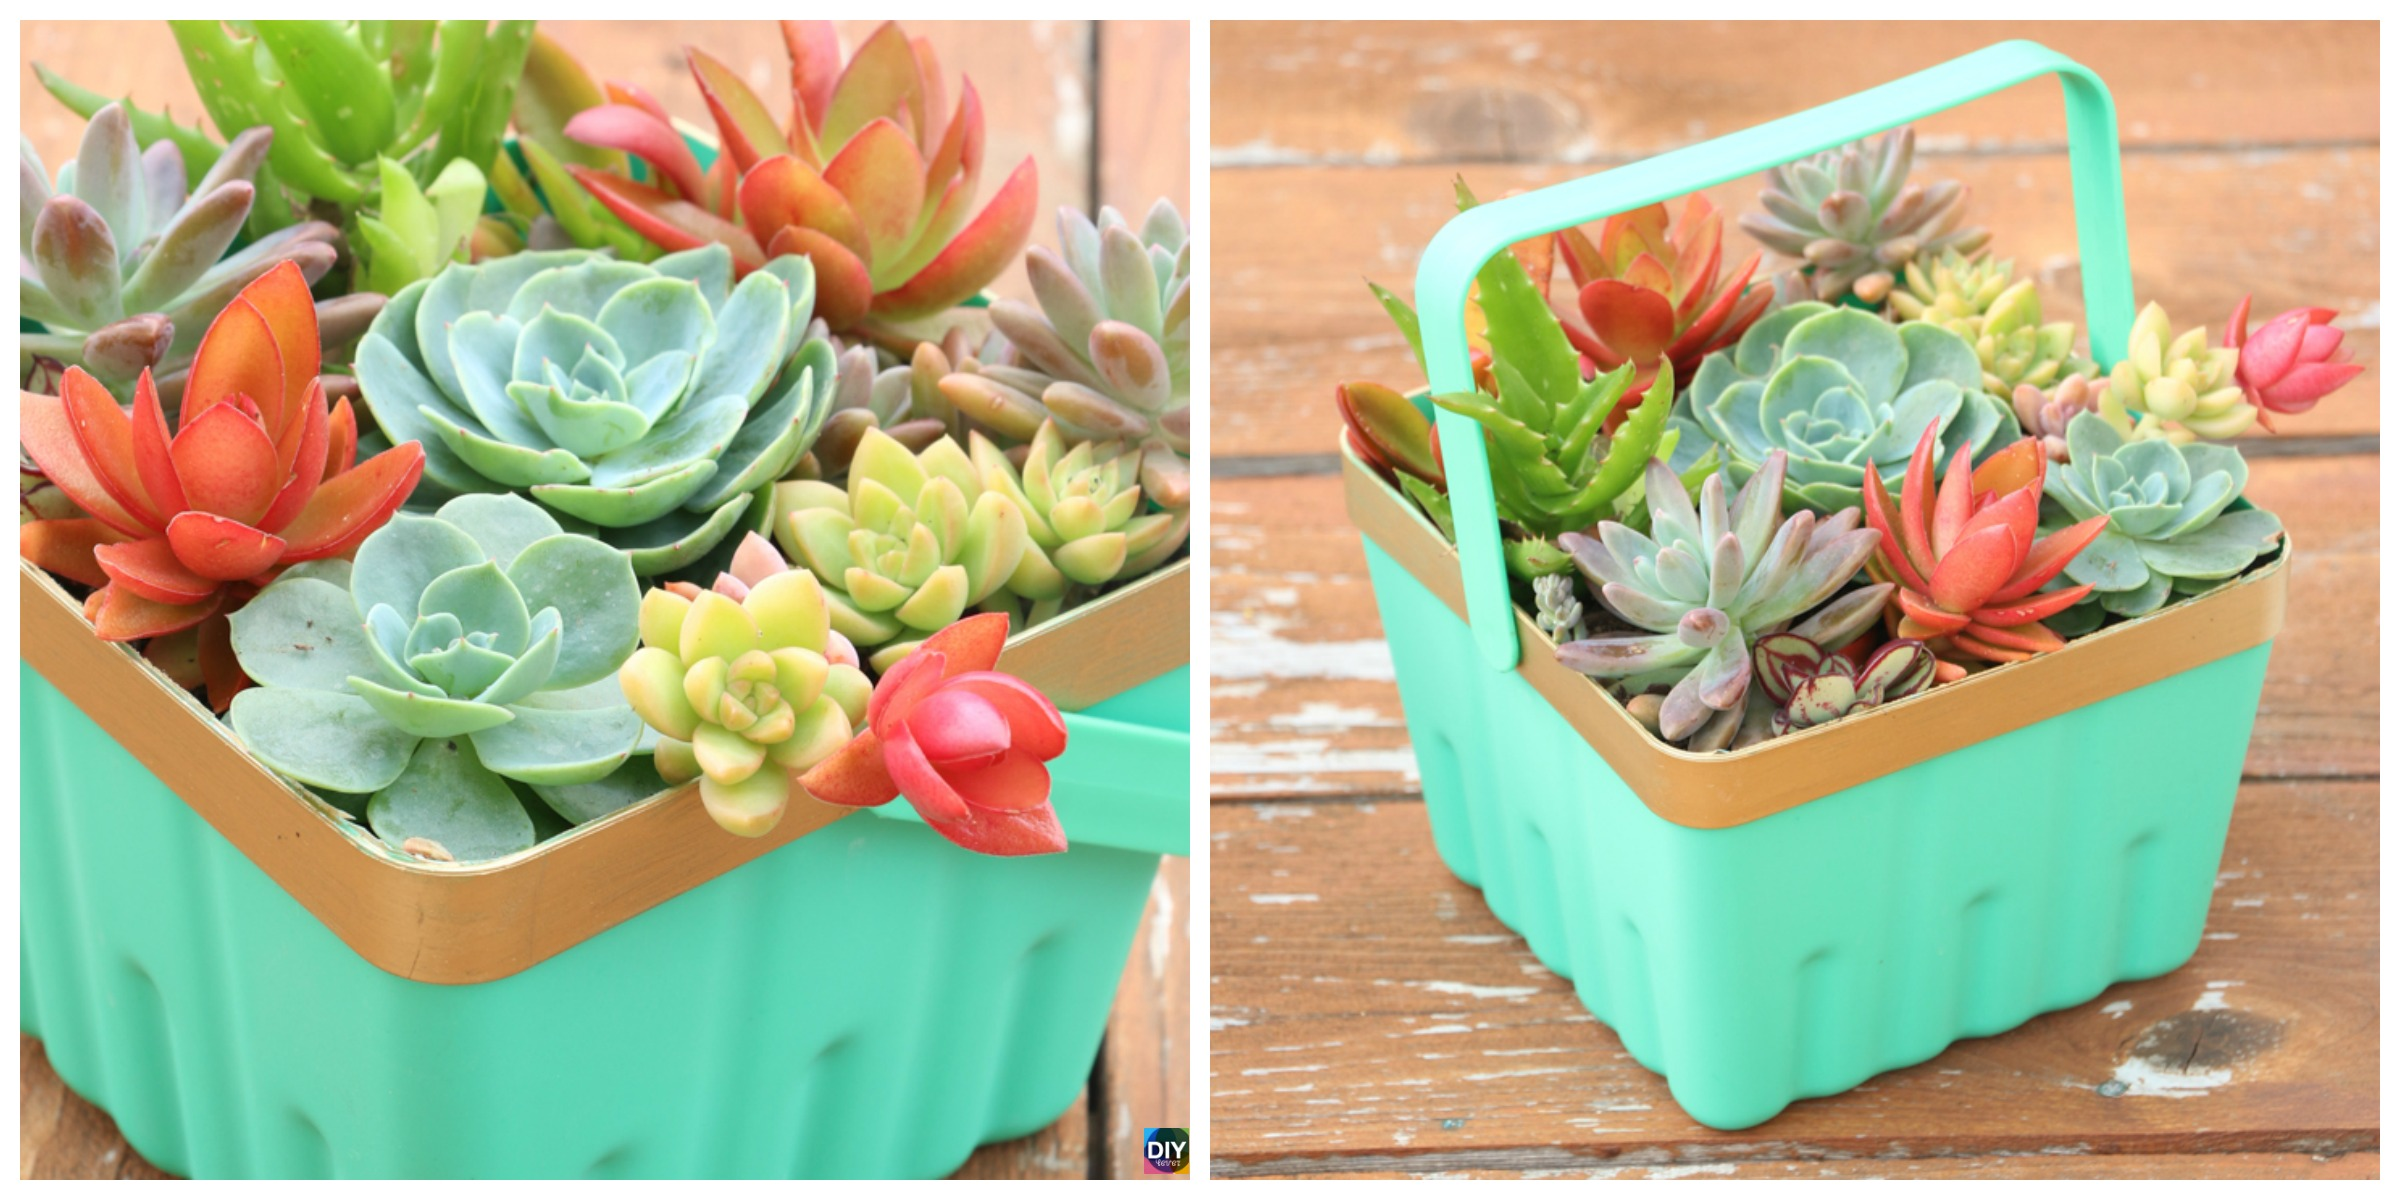 Simple DIY Basket Succulent Planter